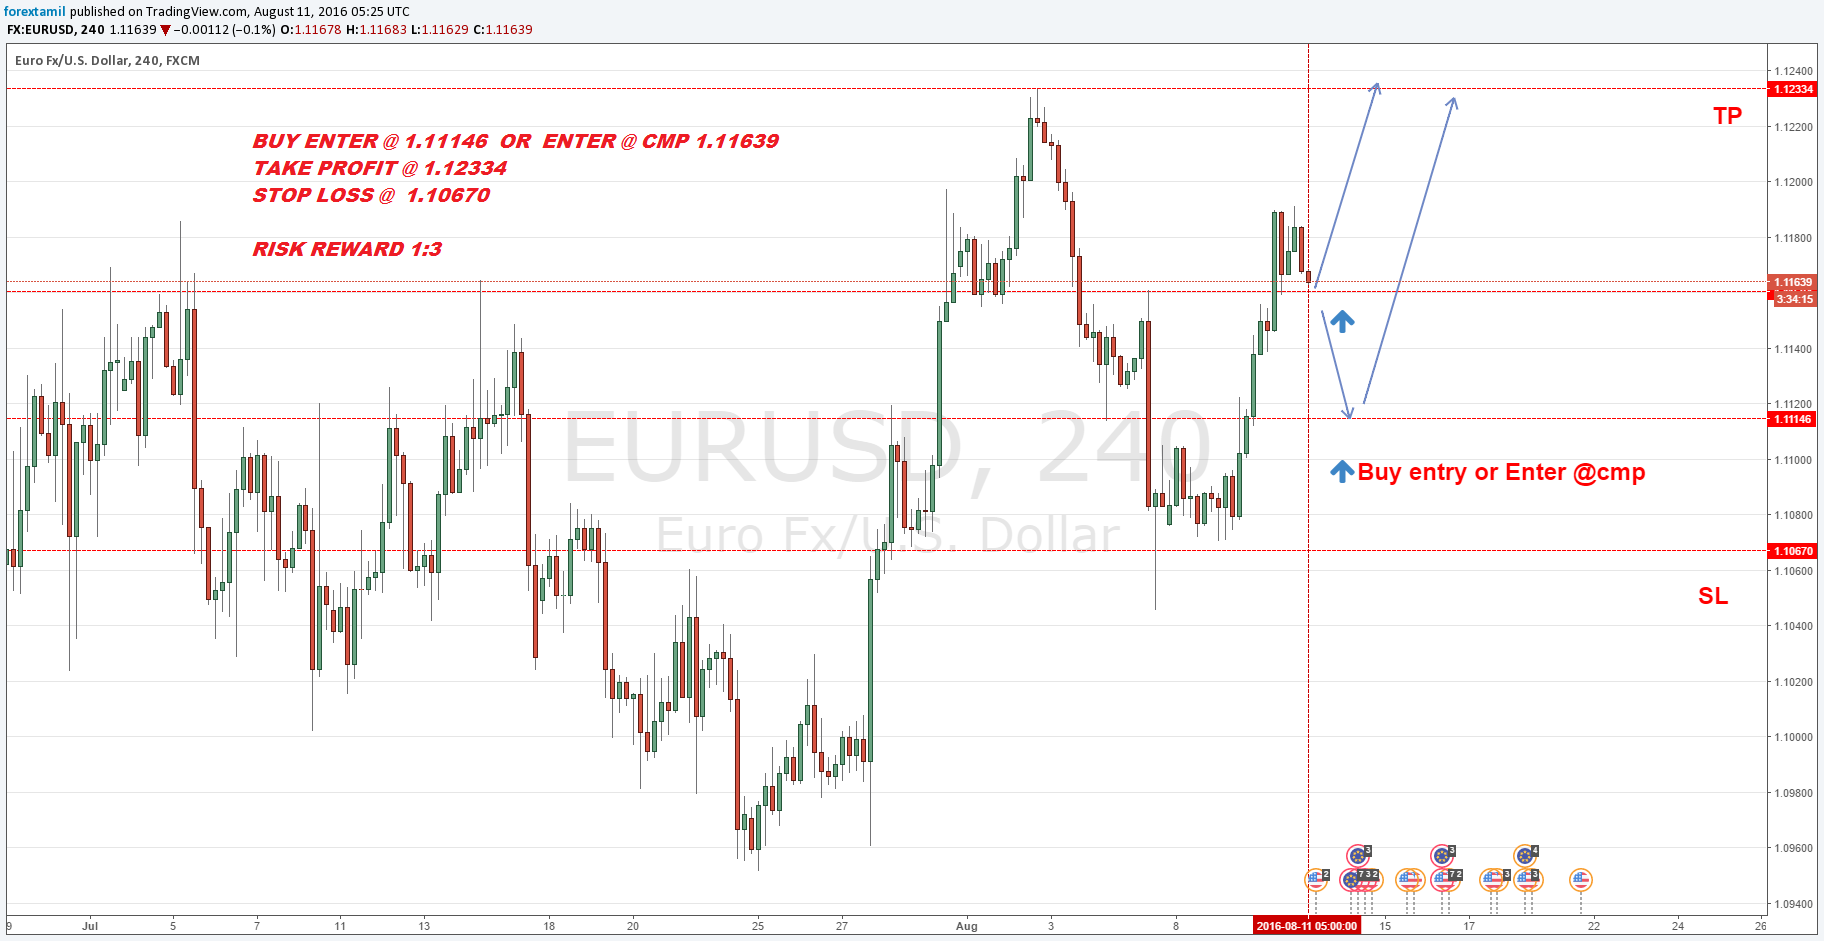 Q-FOREX LIVE CHALLENGING SIGNALS EUR/USD BUY  ENTRY @ 1.11146 OR ENTER @ CMP 1.111639